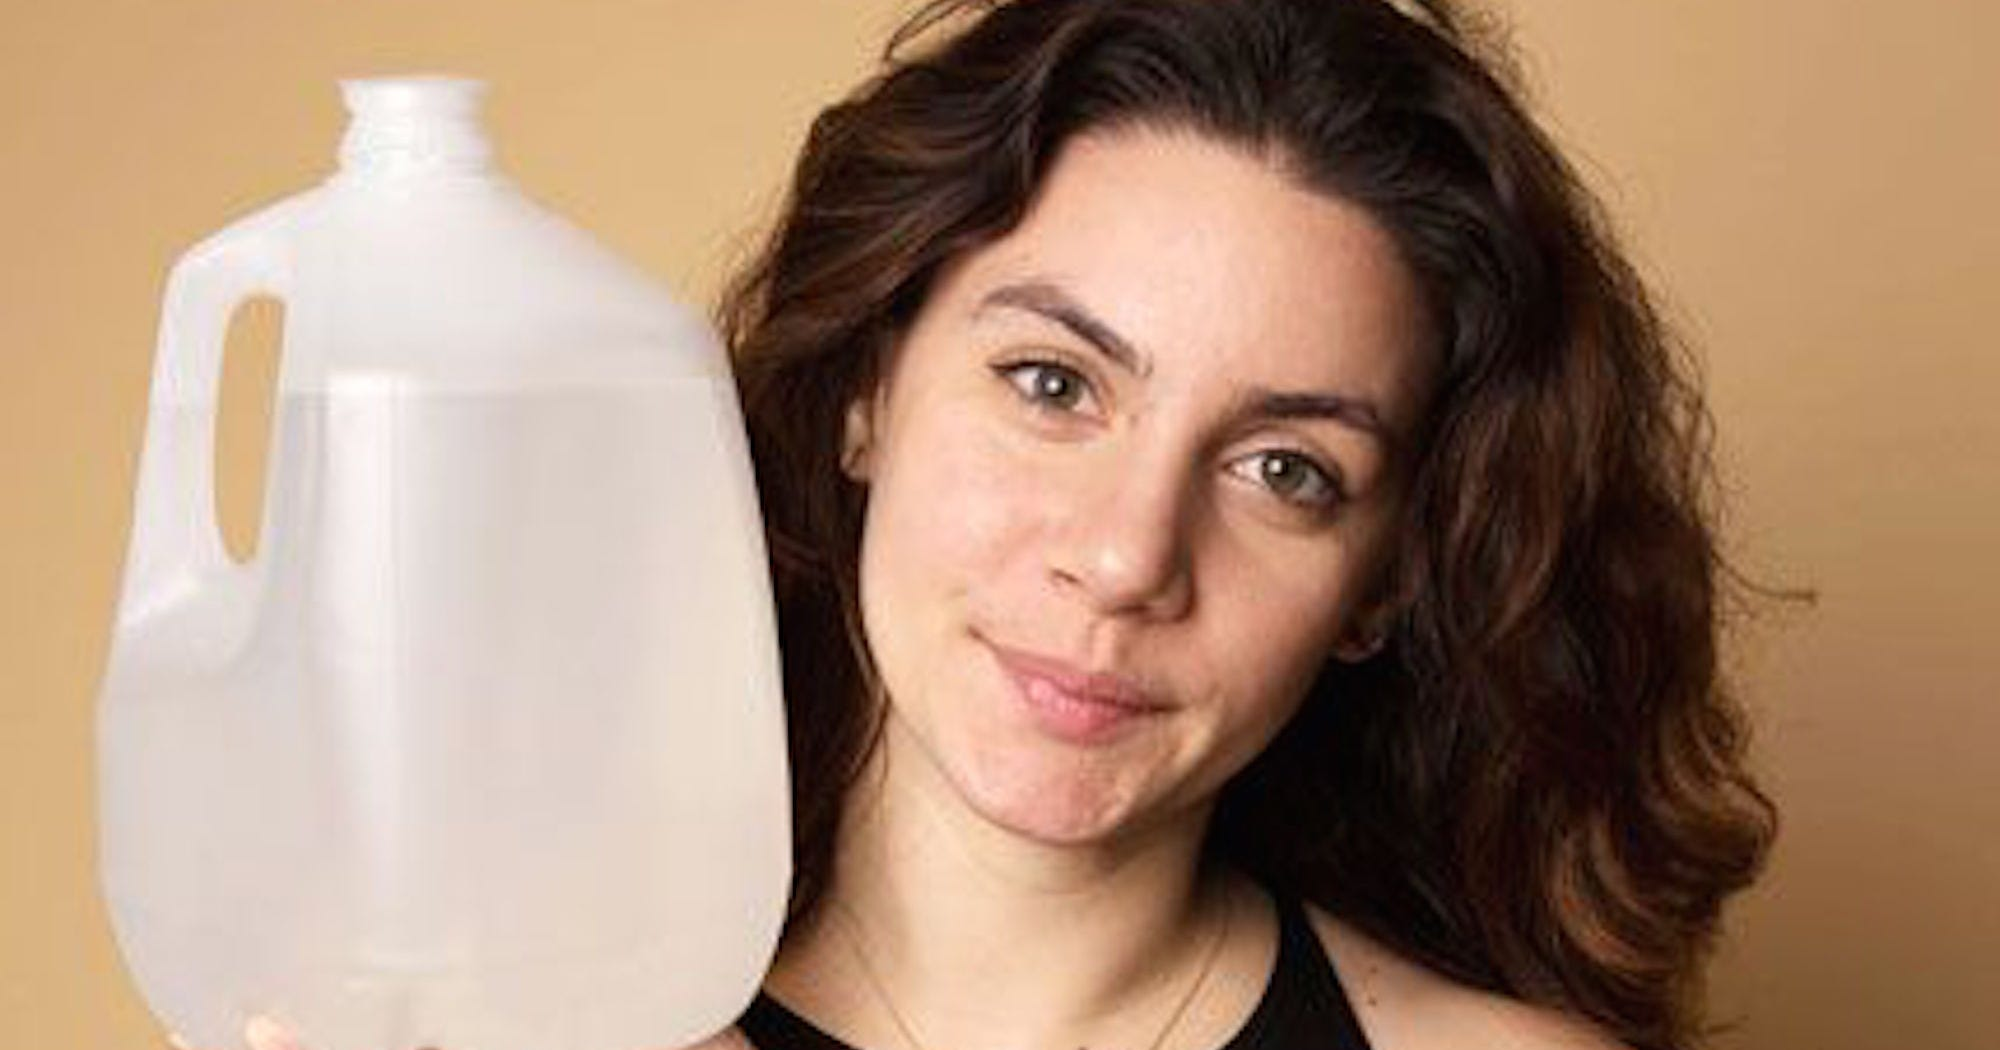 Is Hot Water With Lemon The Key To Glowing Skin?